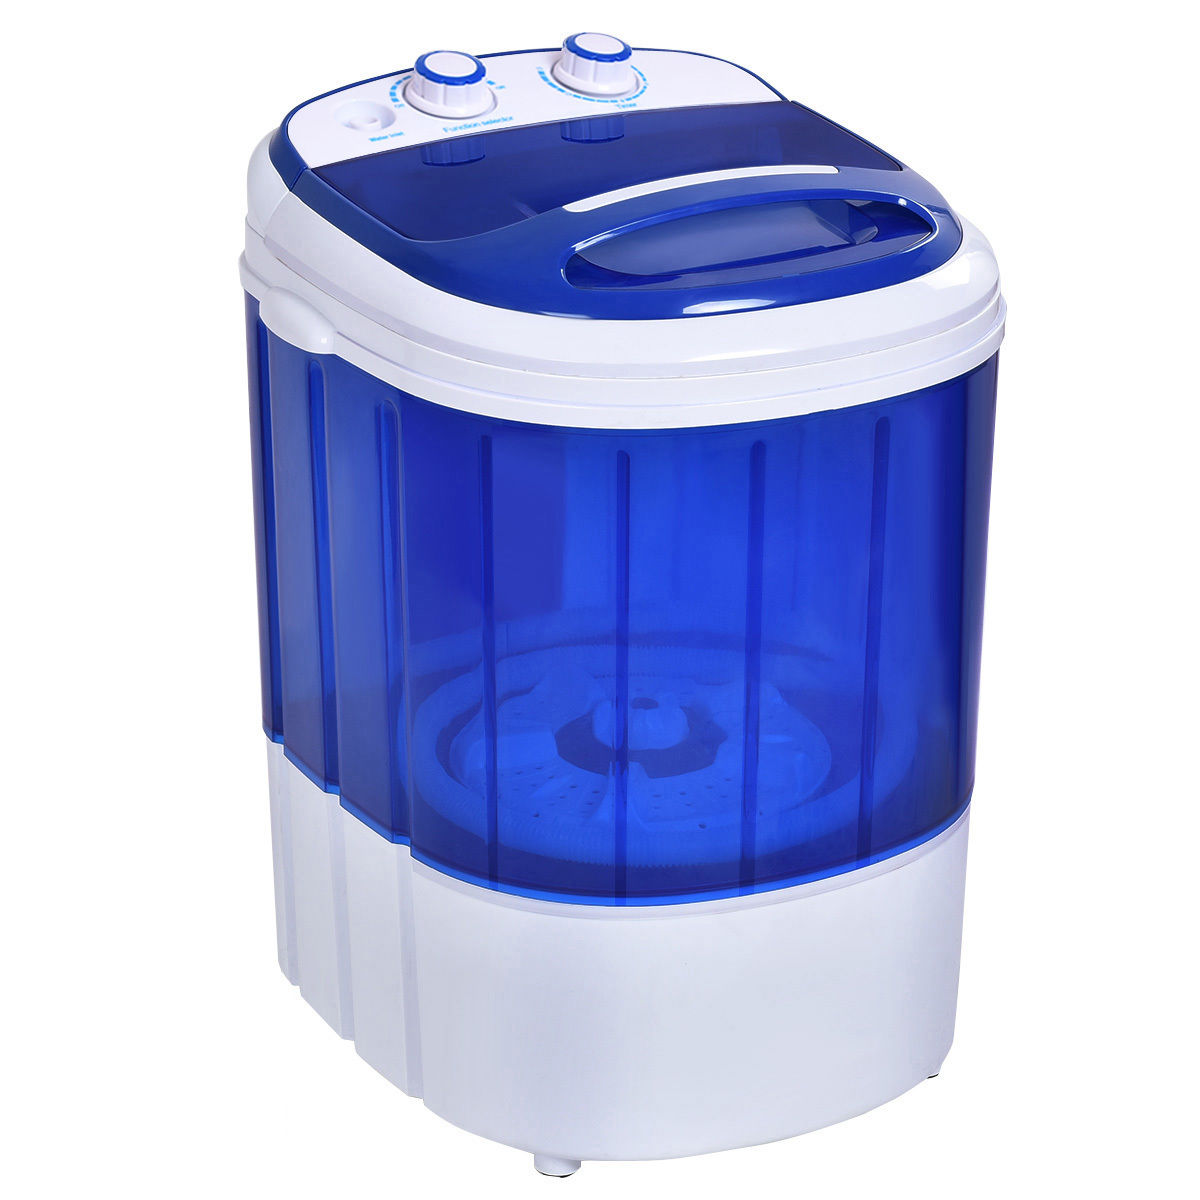 Costway Small Mini Portable Compact Washer Washing Machine 6.6lbs Capacity  Blue